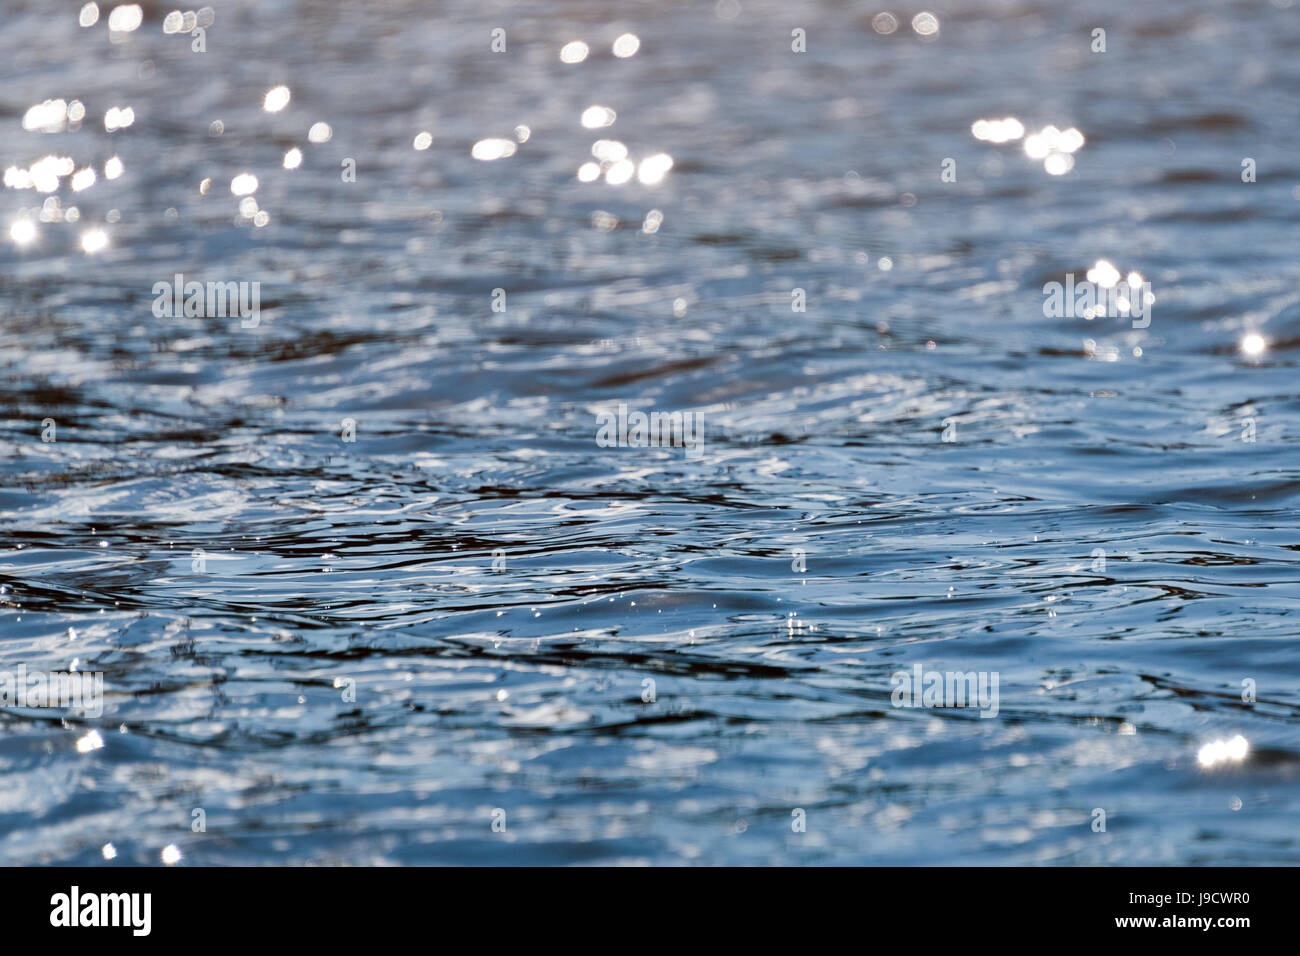 Water with bokeh background. Water surface with waves glittering in the sun - Stock Image